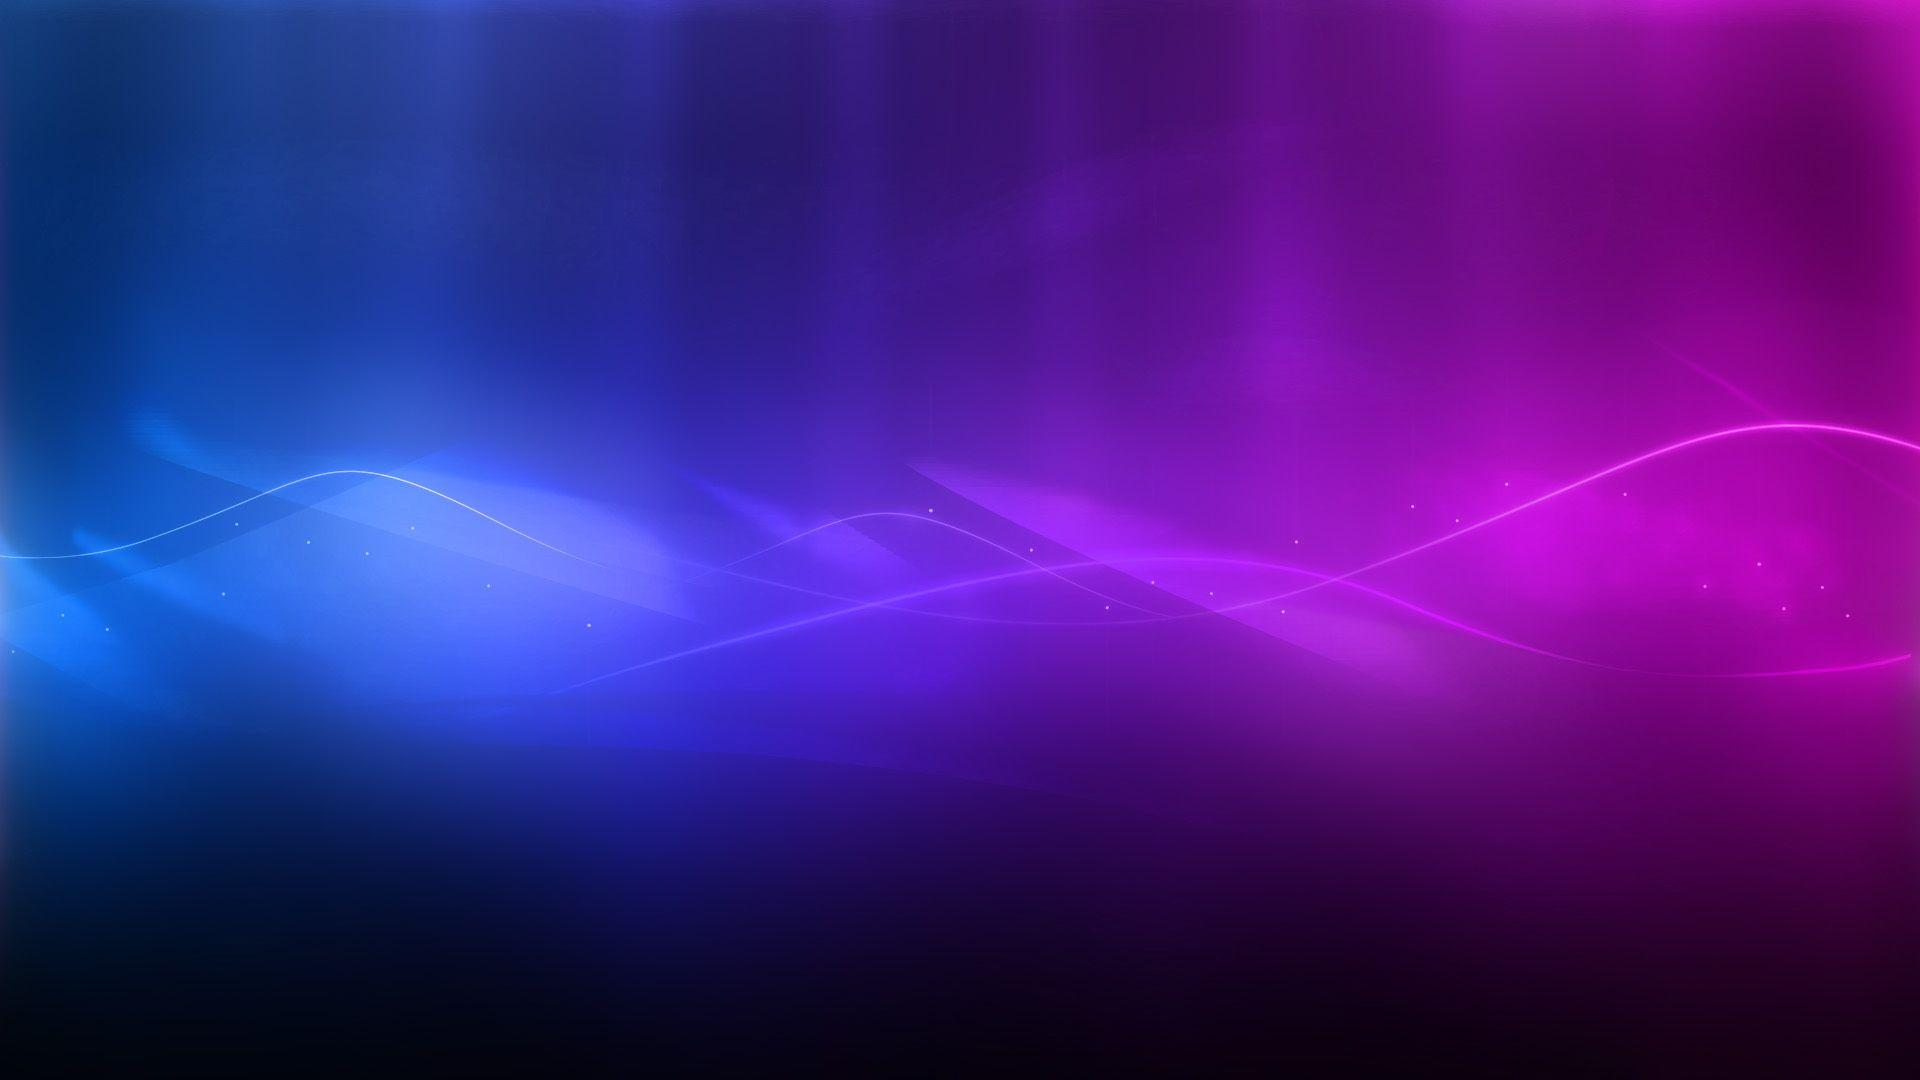 Pink Purple And Blue Backgrounds 1920x1080